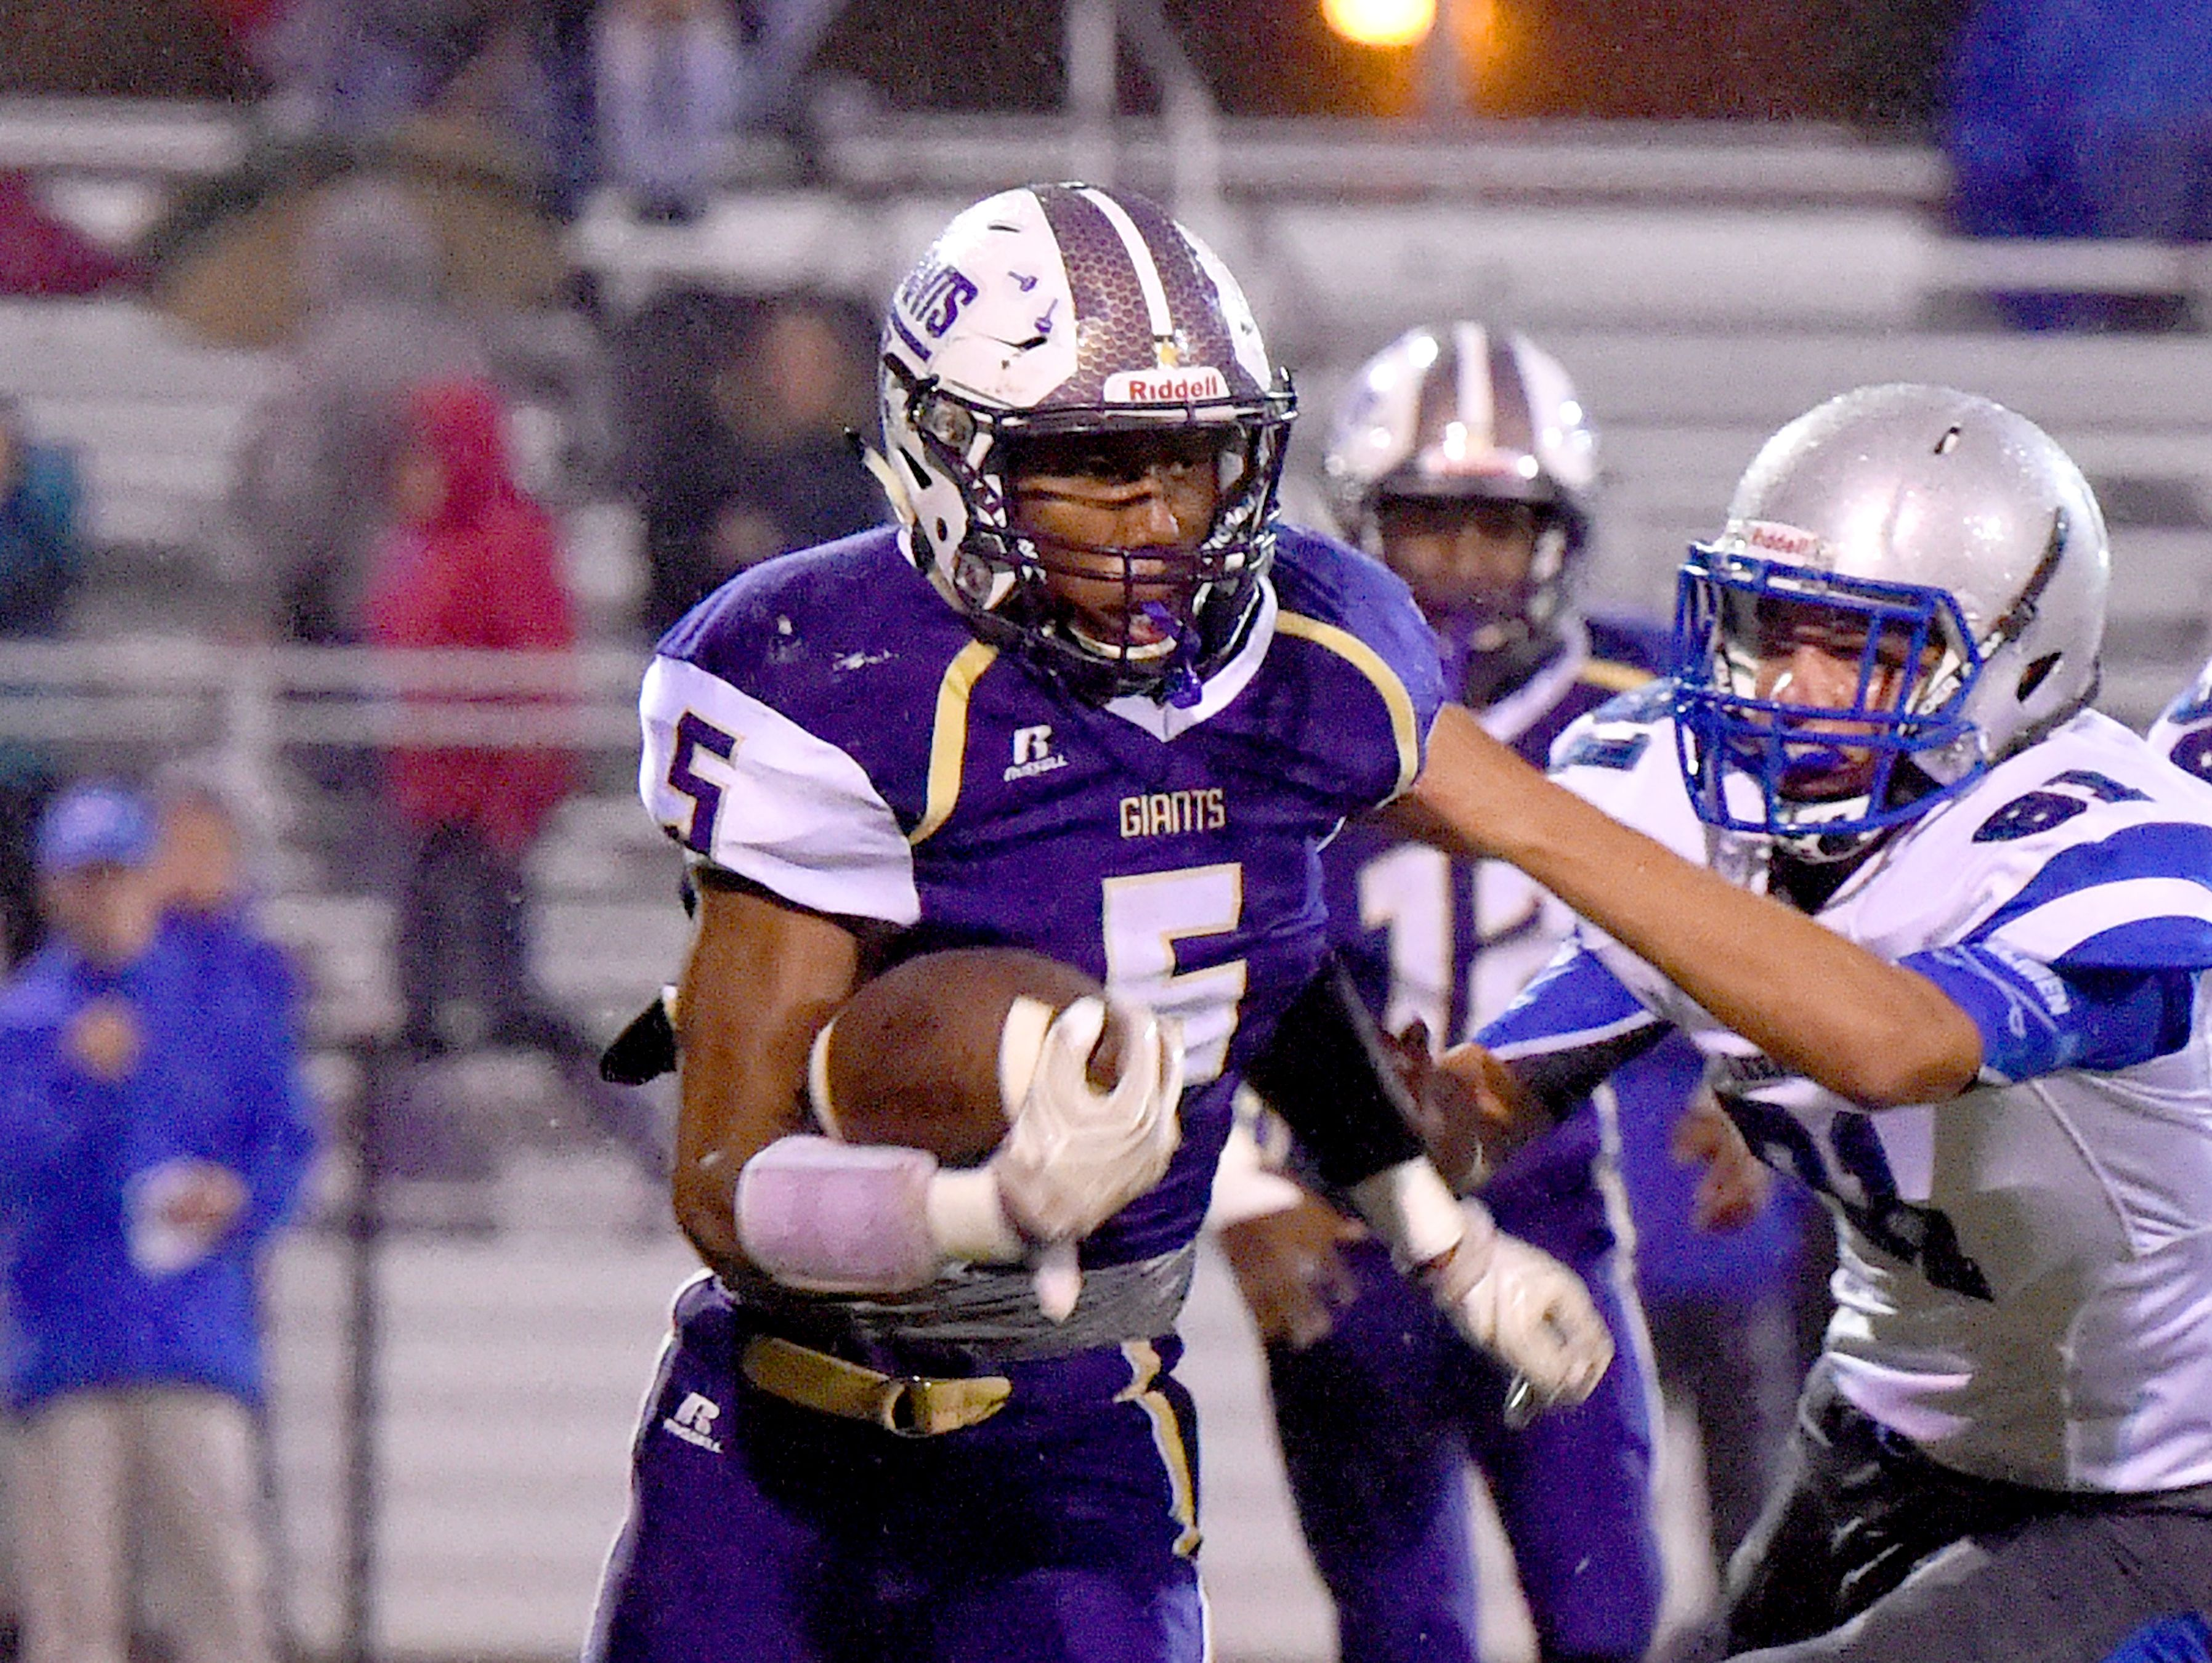 Waynesboro's Dequiondre Clark was a first-team selection to the All-Valley District football team as an offensive utility player.